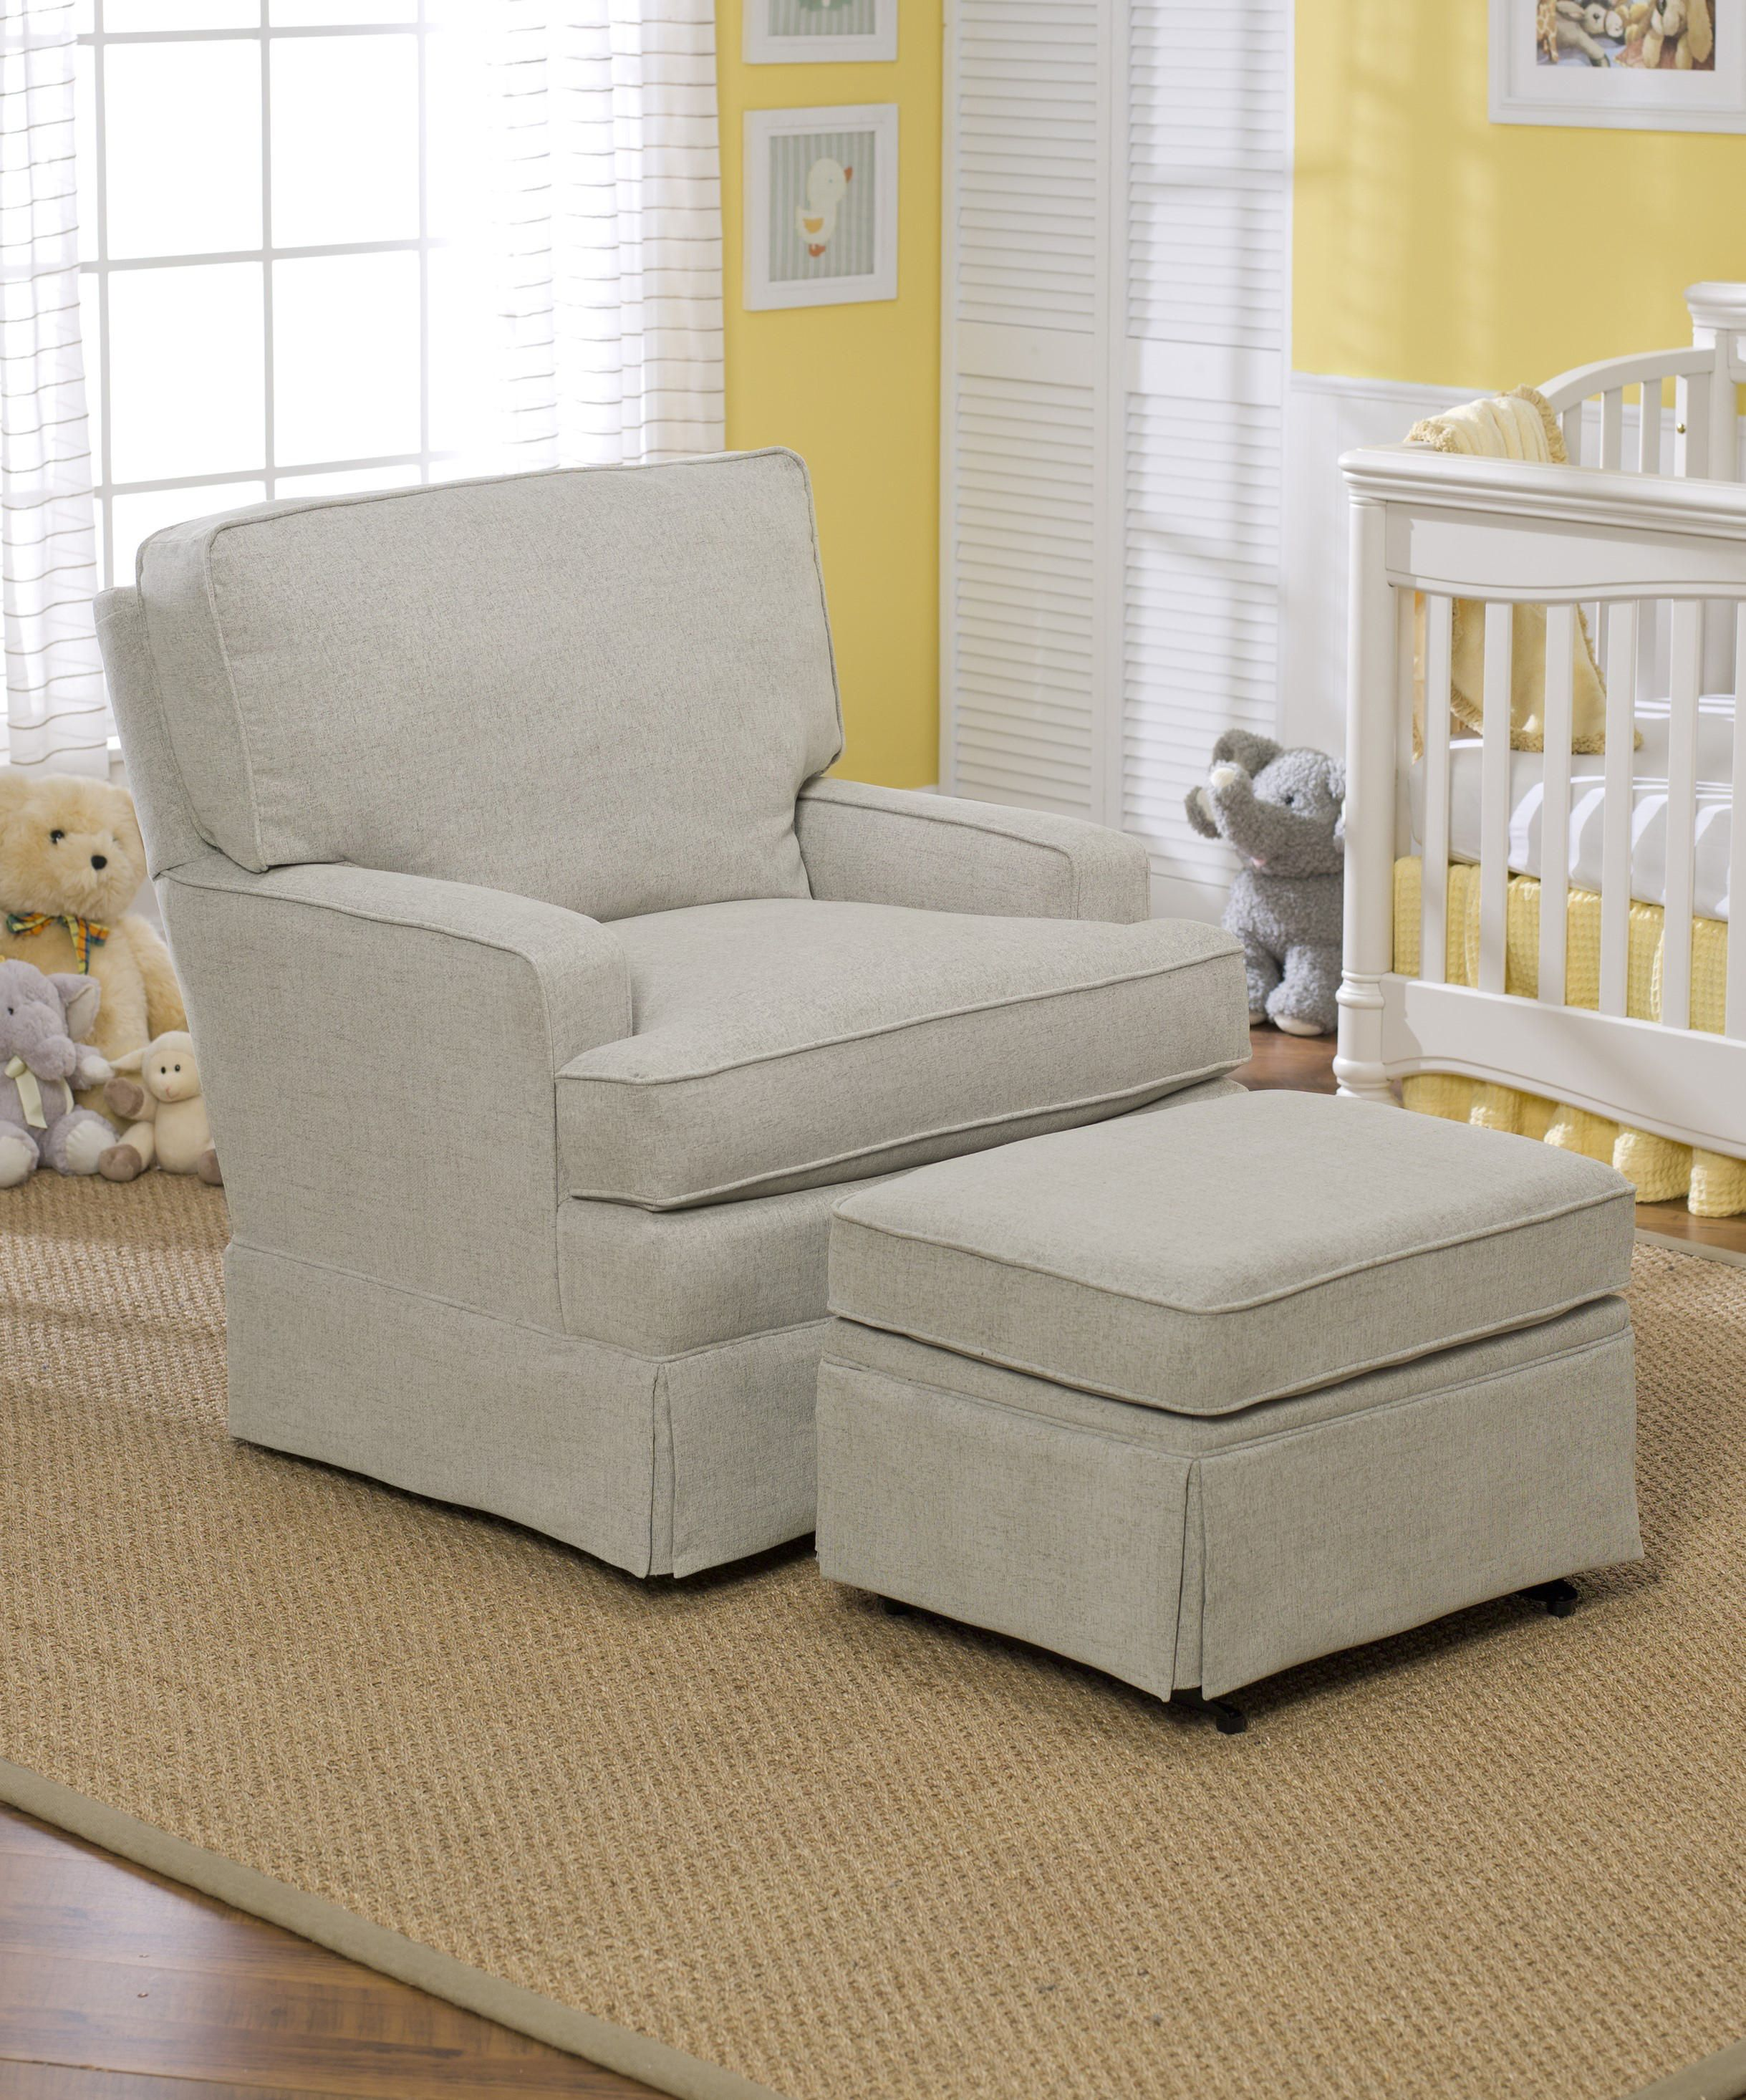 Upholstered rocking chairs truimgysrusproductimageszoomg